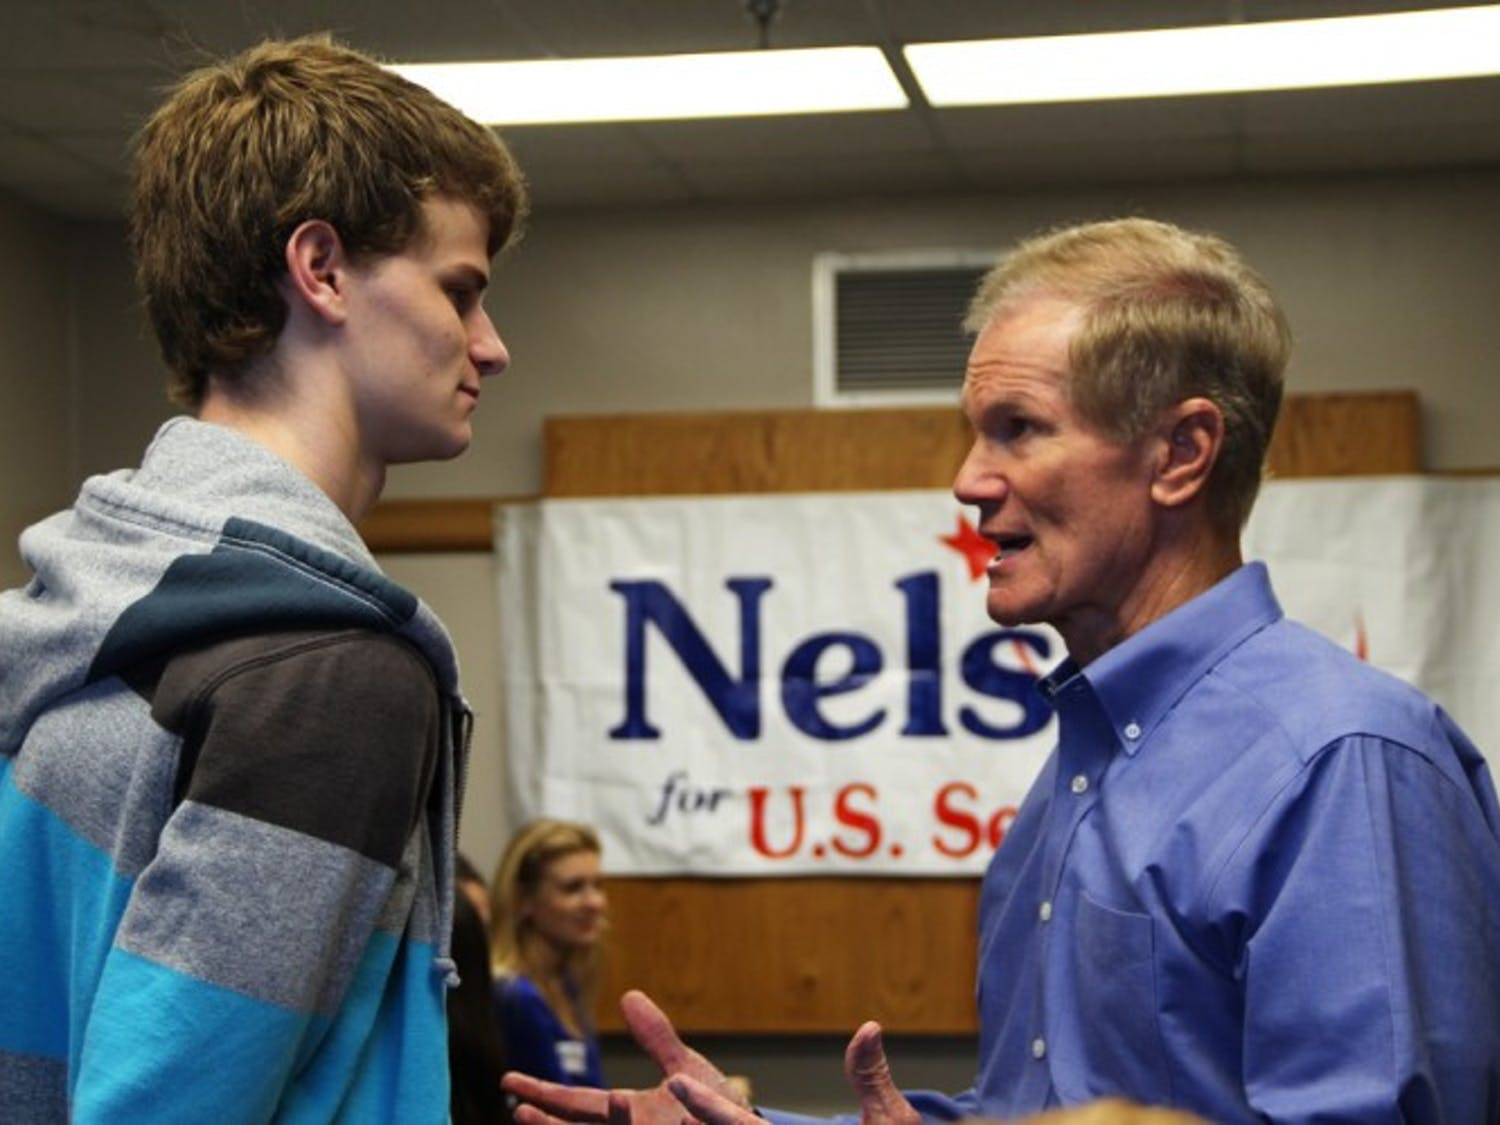 Sen. Bill Nelson greets Kenny Heidegger, an 18-year-old political science freshman. Nelson held a discussion and a Q-and-A session at which students asked questions pertaining to the environment and how to urge the average voter away from bipartisanship.